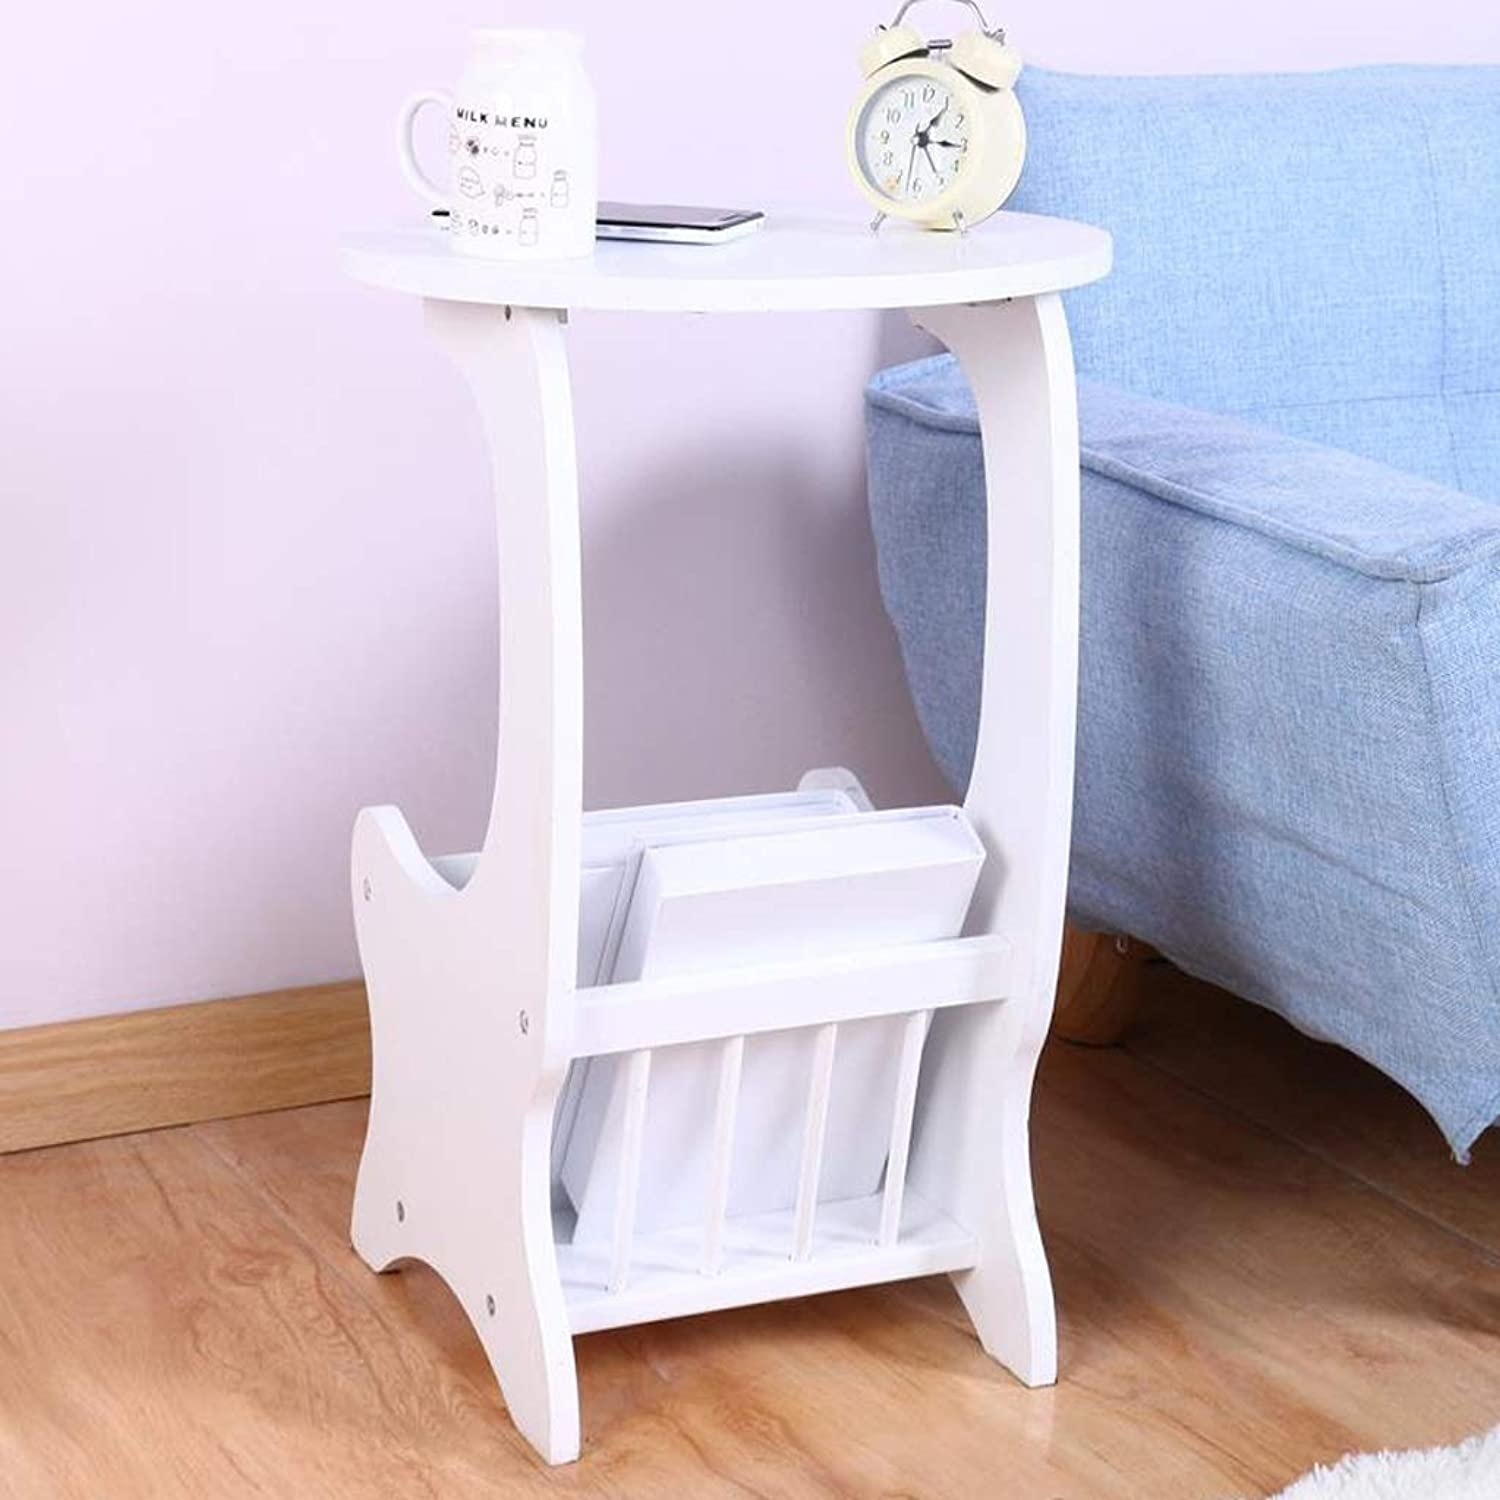 End Table, Round End Table Side Table Coffee Table, Easy to Assemble Sofa Side with Storage Shelf White